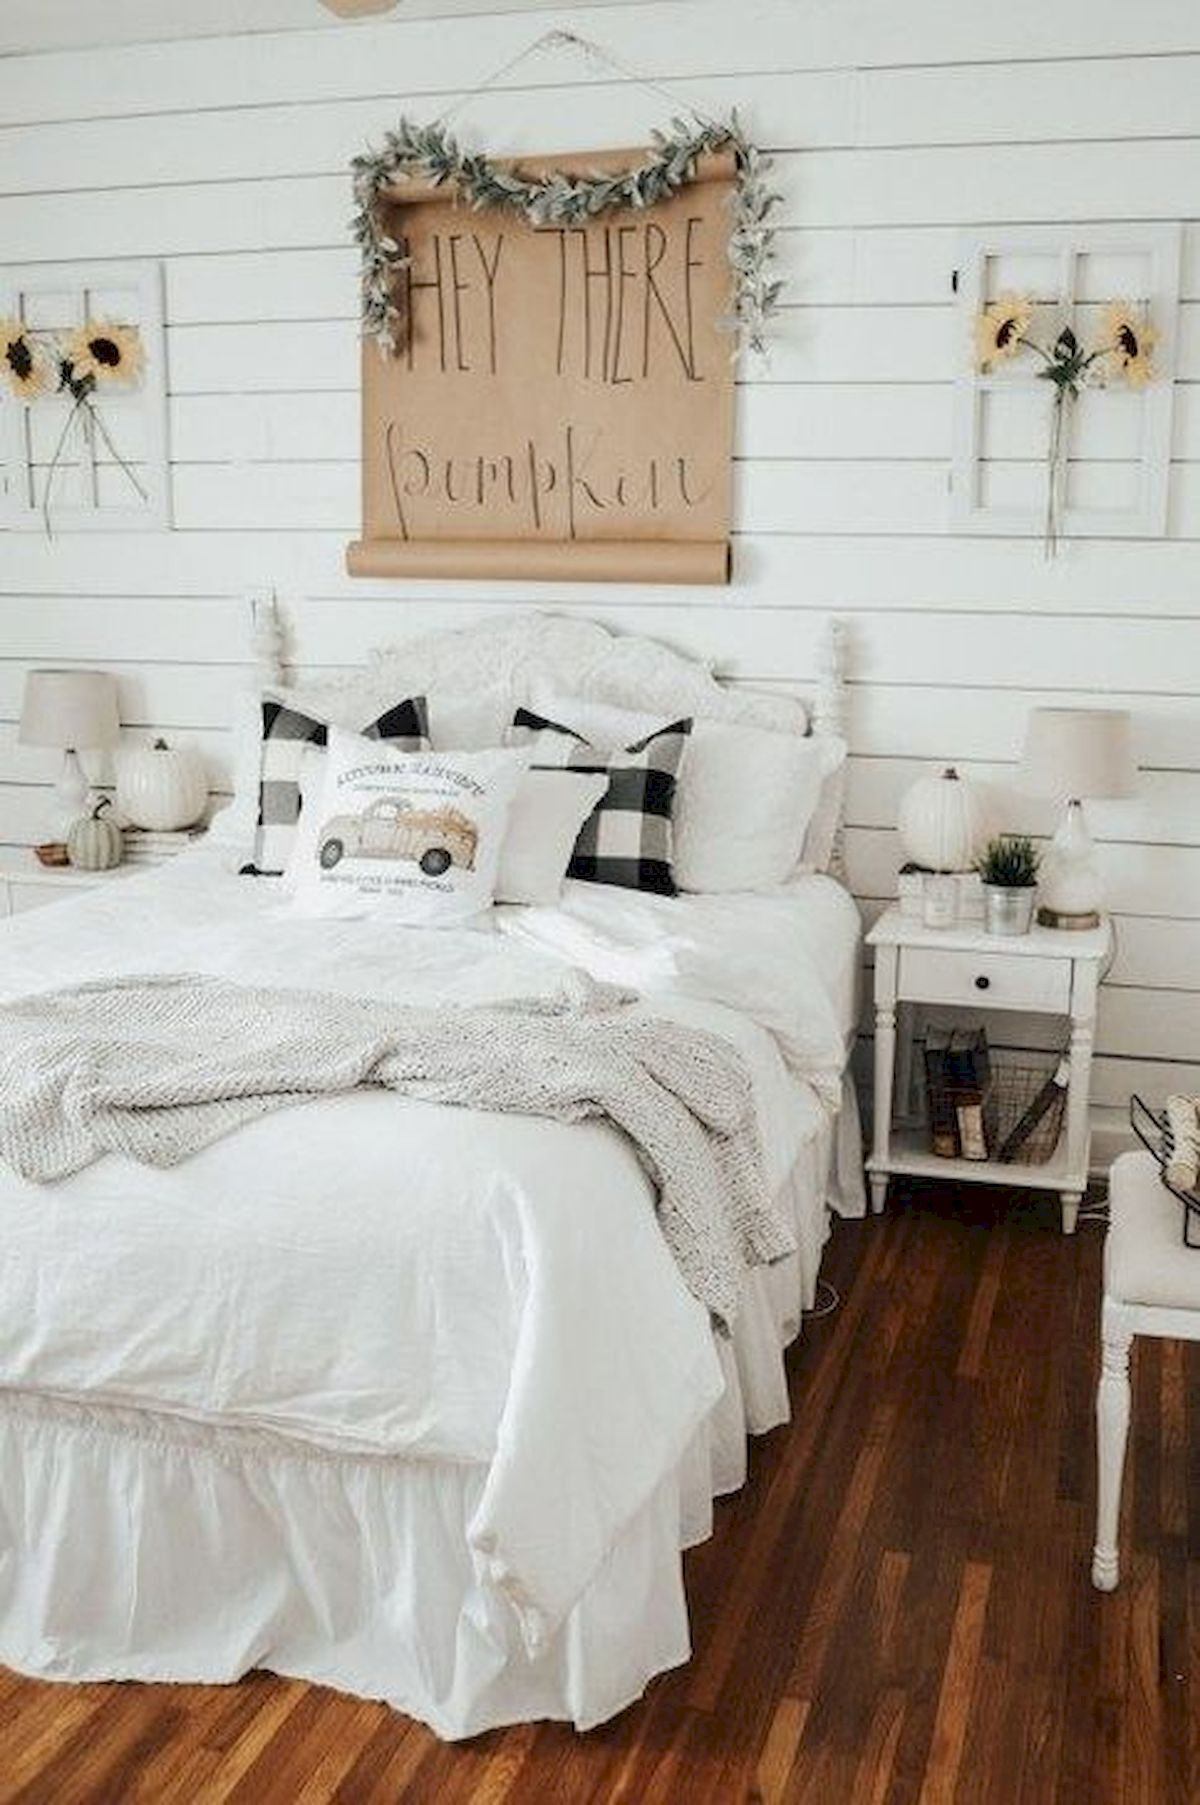 30 Awesome DIY Fall Decoration Ideas For Your Bedroom (14)